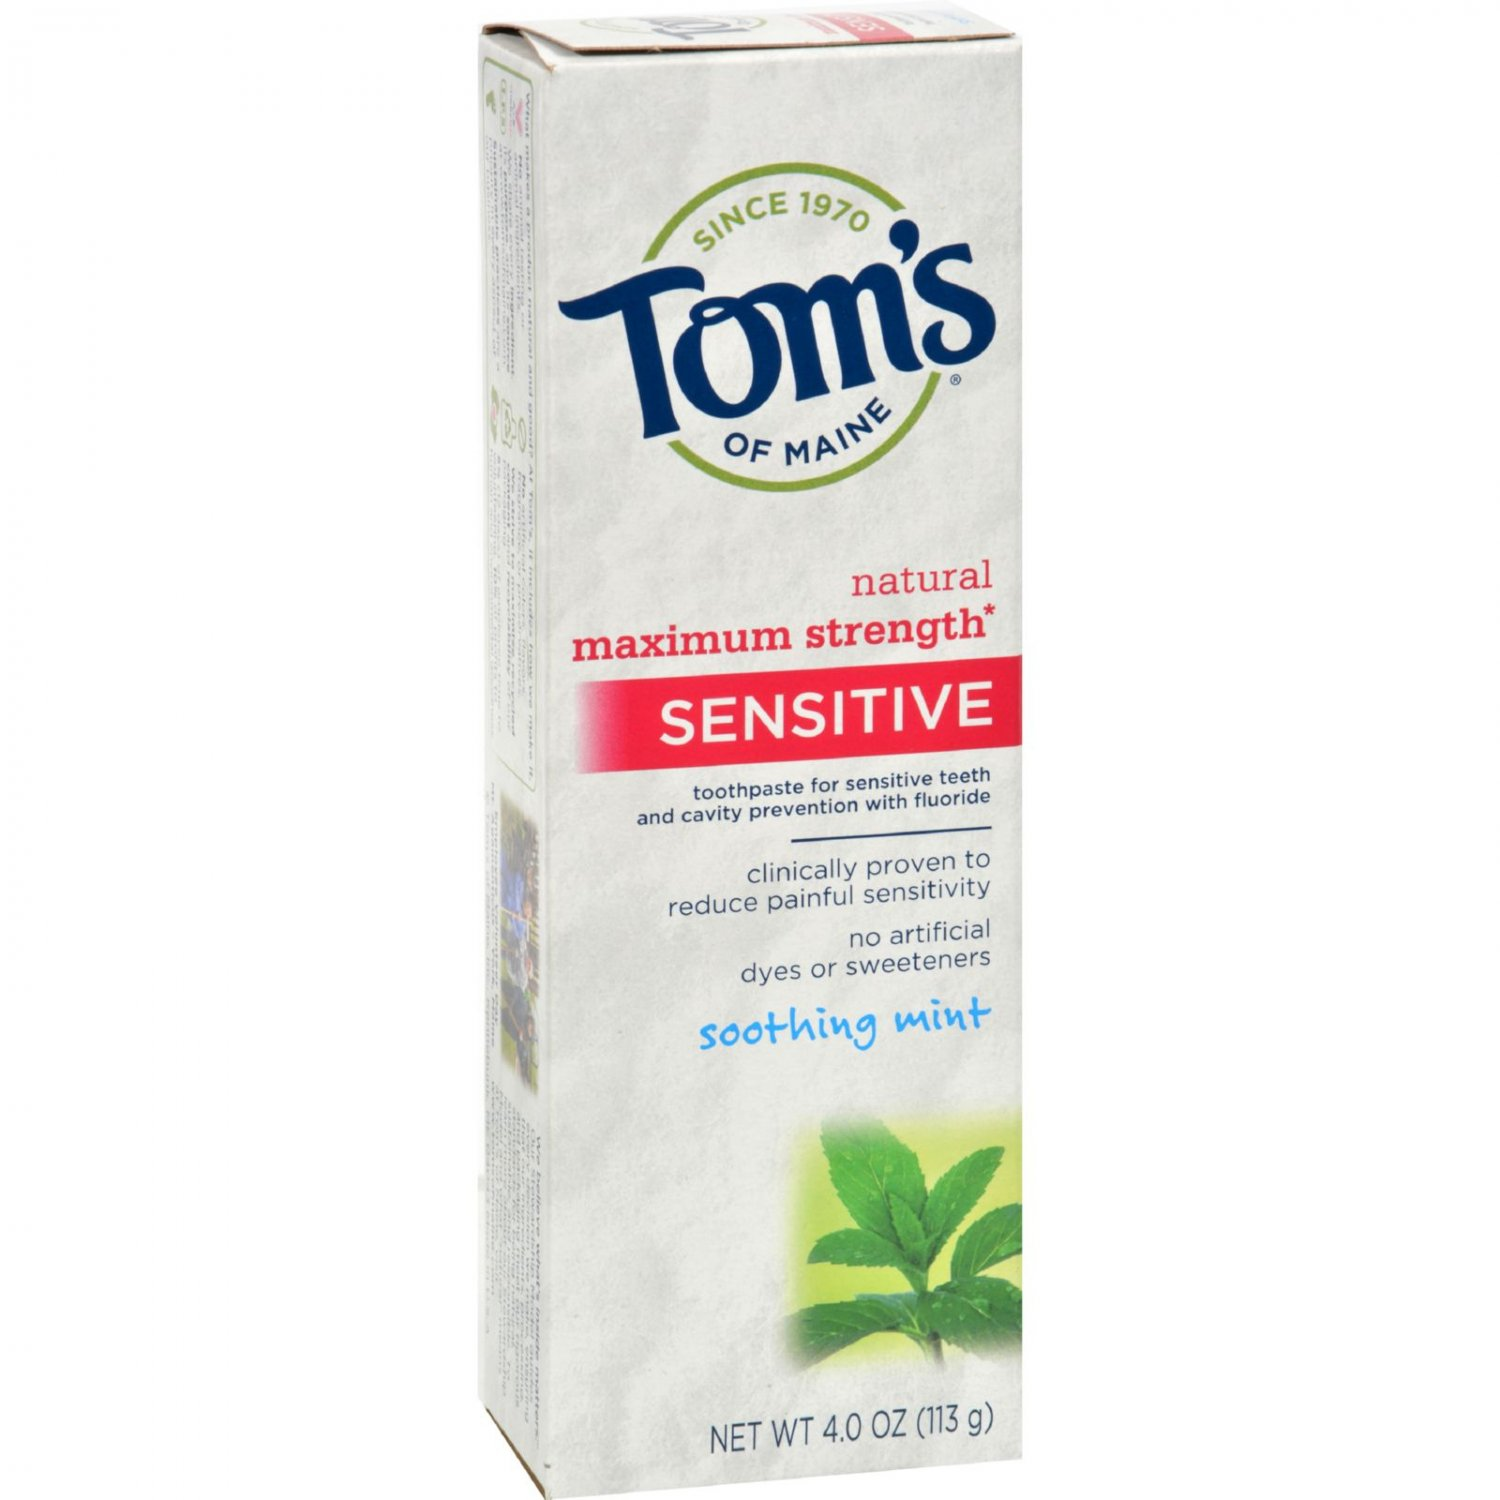 Tom's of Maine Sensitive Toothpaste Soothing Mint - 4 oz - Case of 6